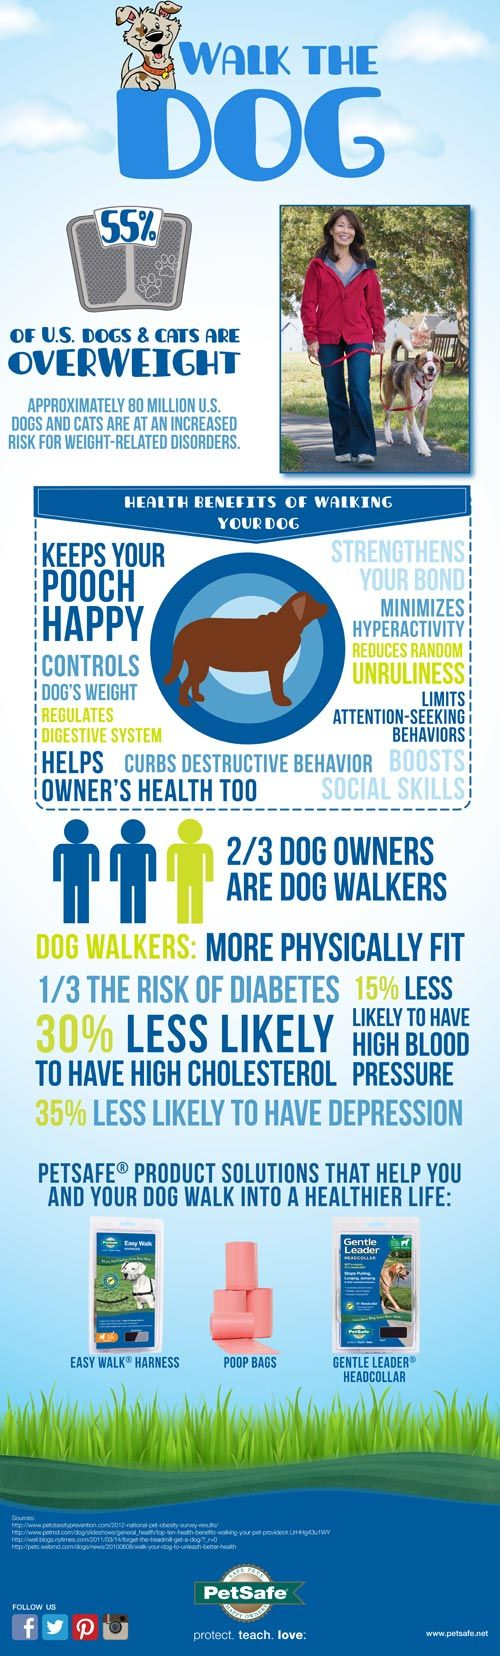 Decrease your risk of high cholesterol, high blood pressure, and depress...just by walking your #dog! via @PetSafe Brand #pethealth